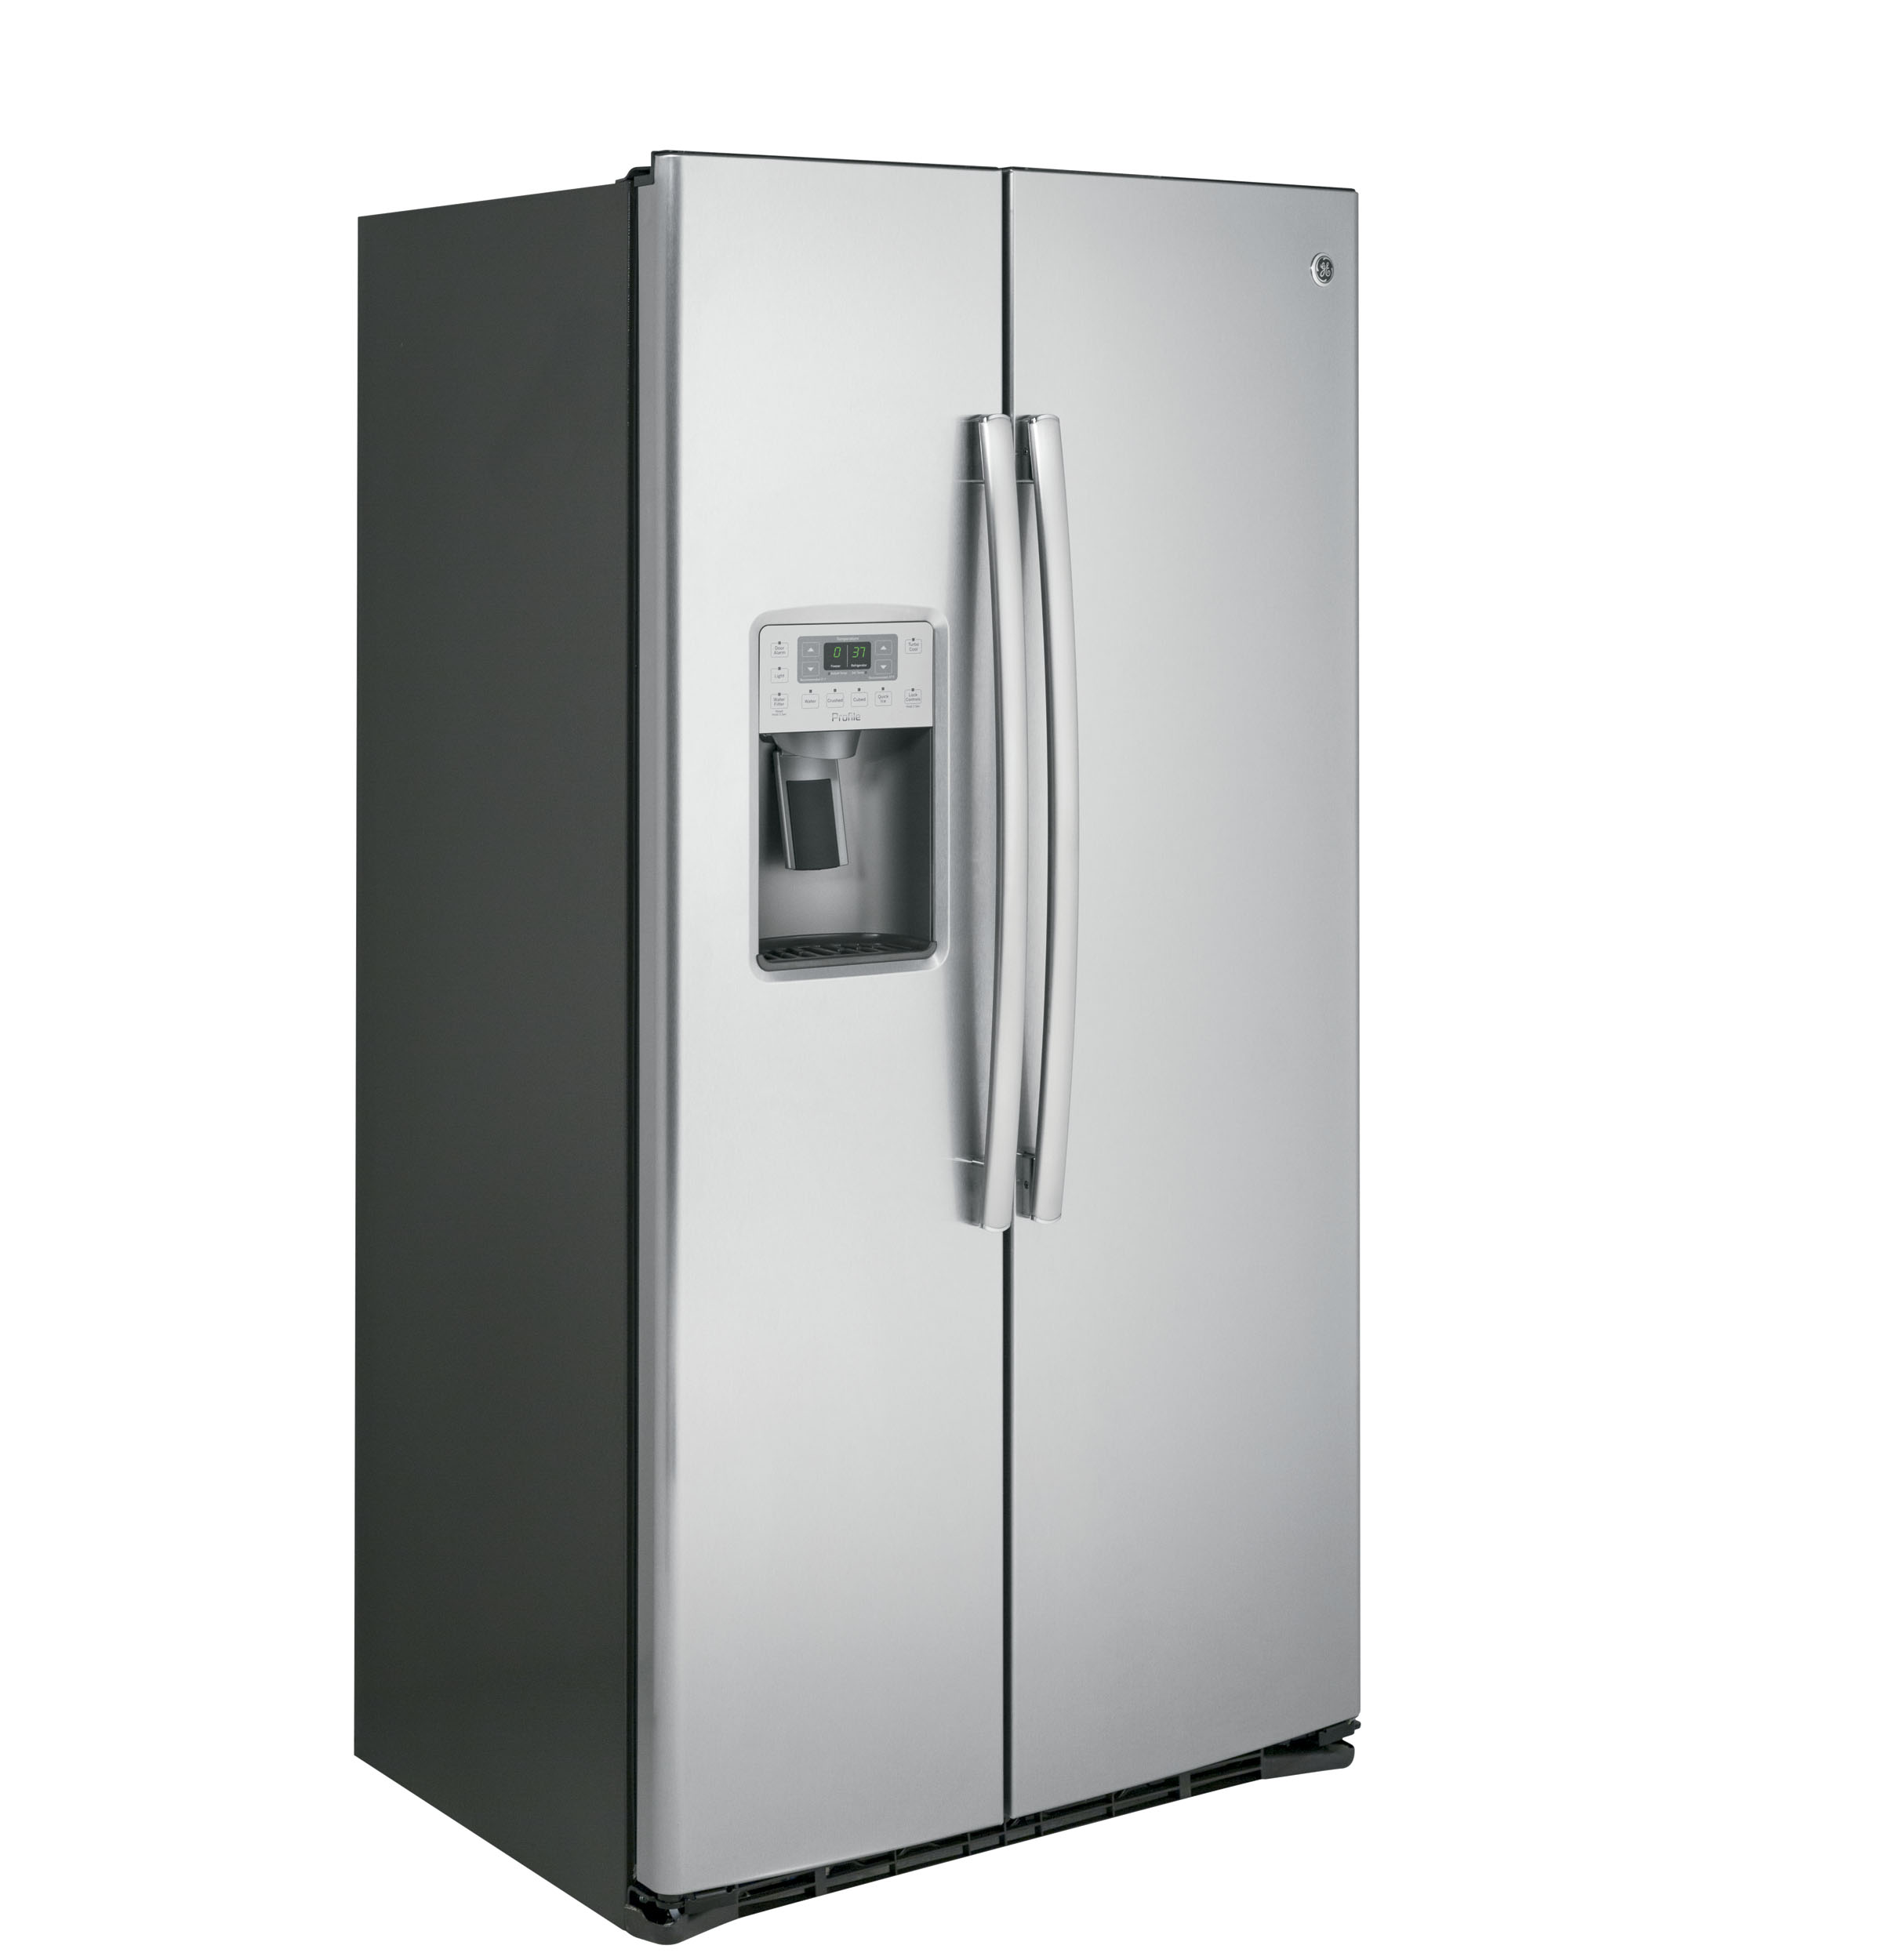 Model: PZS22MSKSS | GE Profile GE Profile™ Series 21.9 Cu. Ft. Counter-Depth Side-By-Side Refrigerator